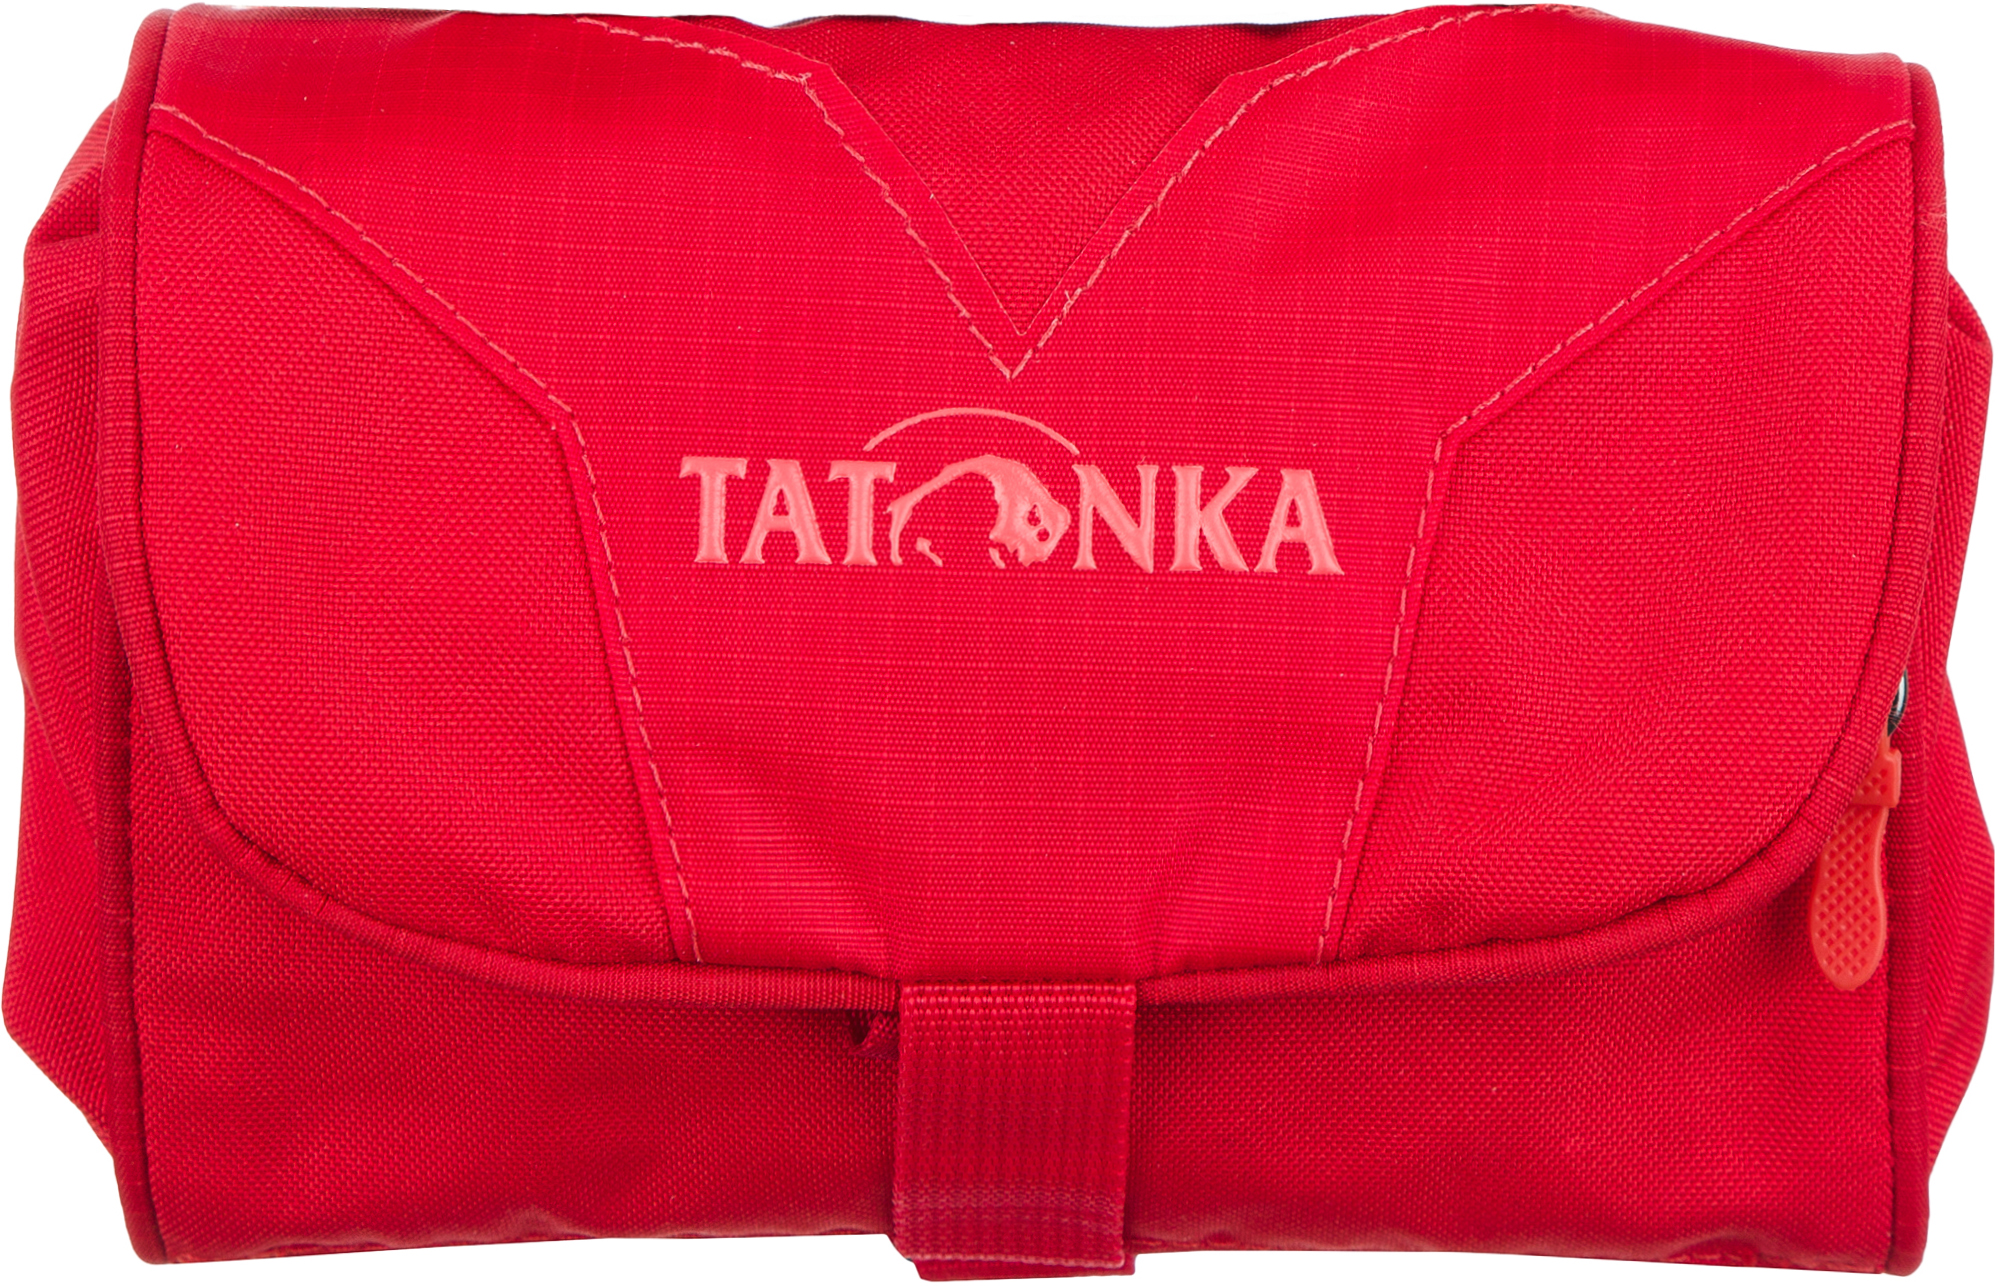 Tatonka Косметичка Tatonka MINI TRAVELCARE tatonka sherpa dome plus